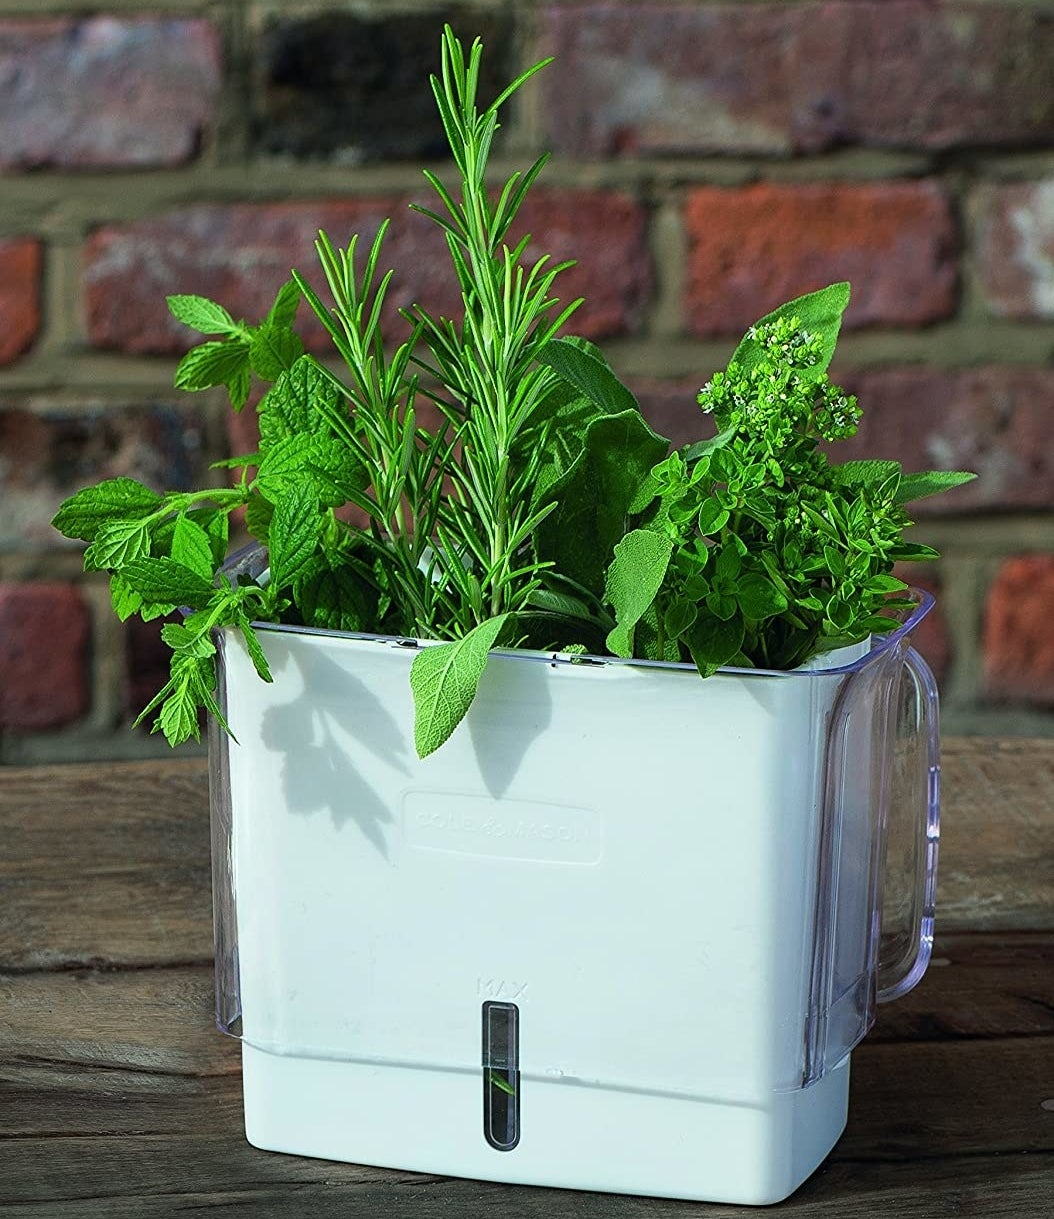 A container with fresh herbs inside